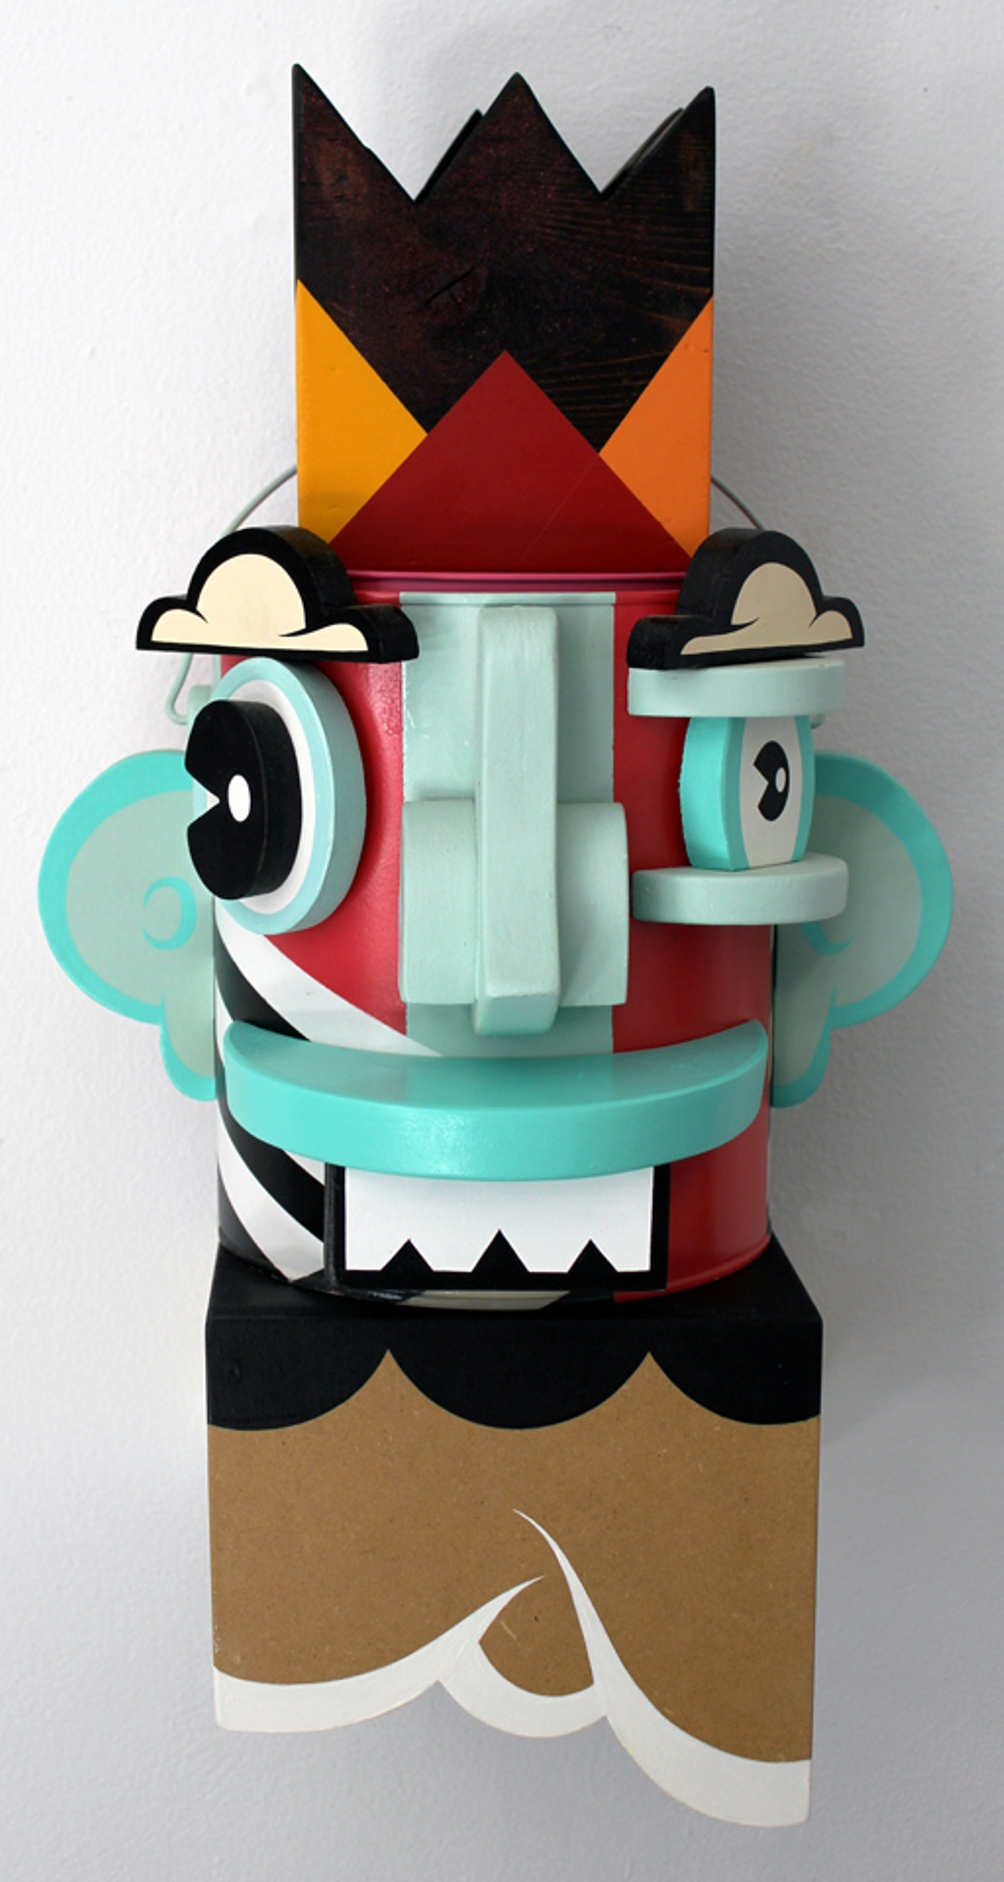 14 Alex Yanes popart tridimensional objects sculptures american art design sztuka amerykanska